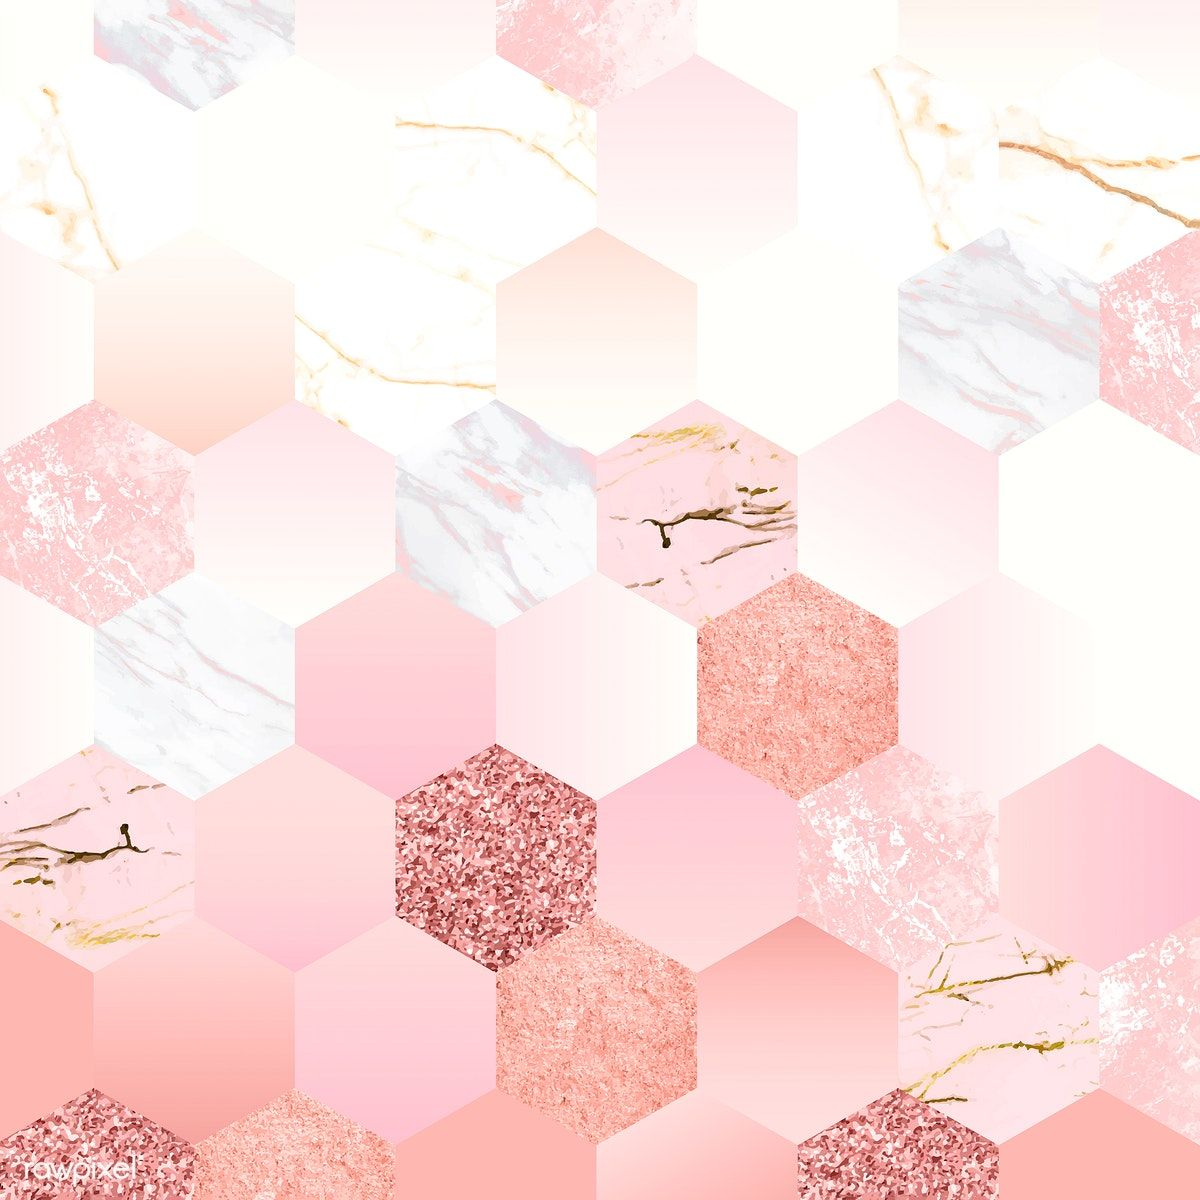 Pink Feminine Hexagon Geometric Background Vector Free Image By